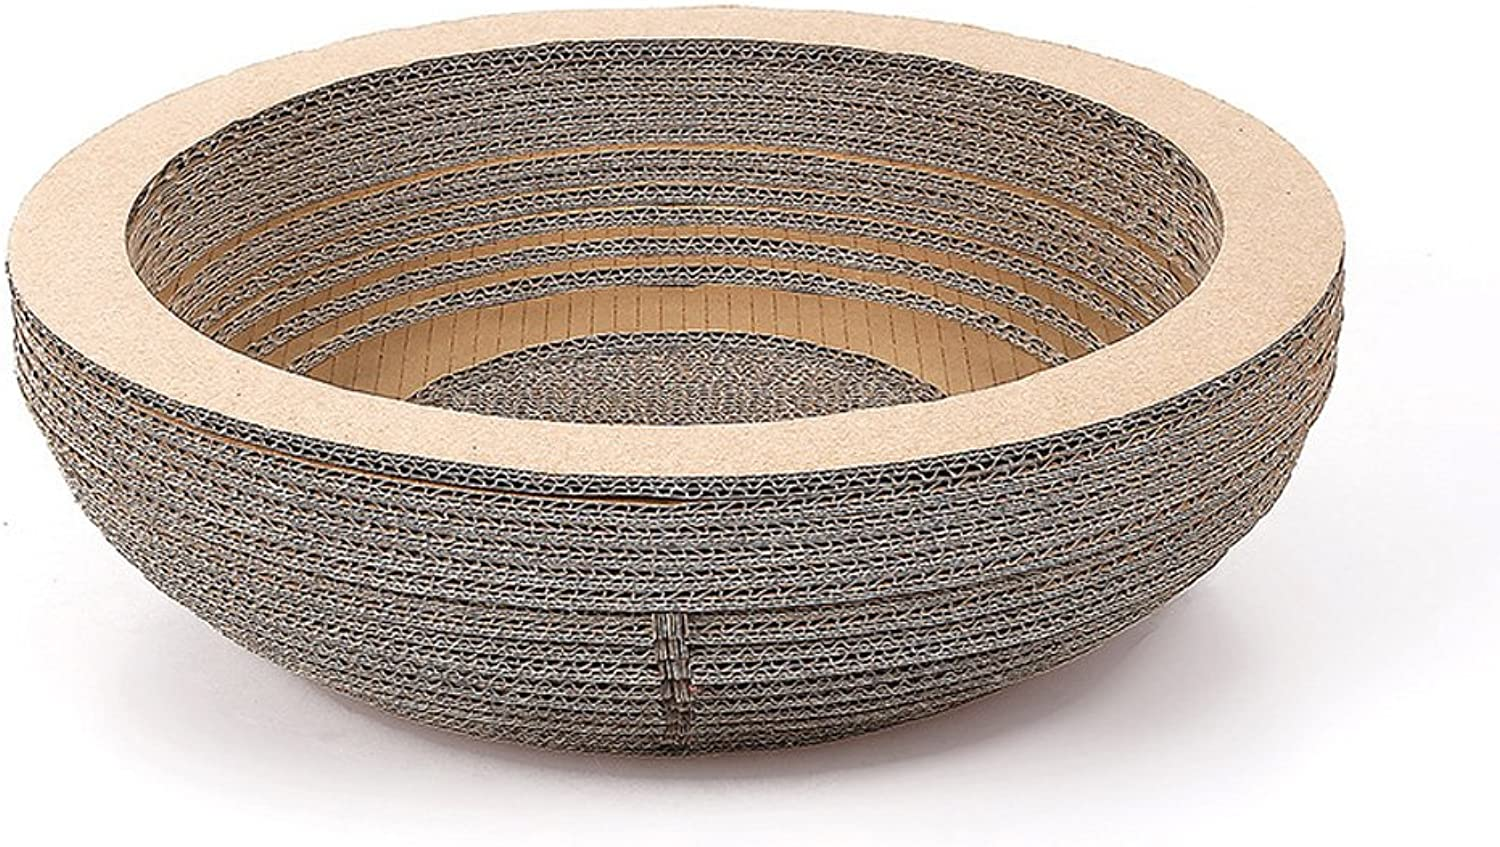 Pethouzz Corrugated Cat Nest Cat Scratcher Lounge Grinding Claws Plate (Bowl Shape)